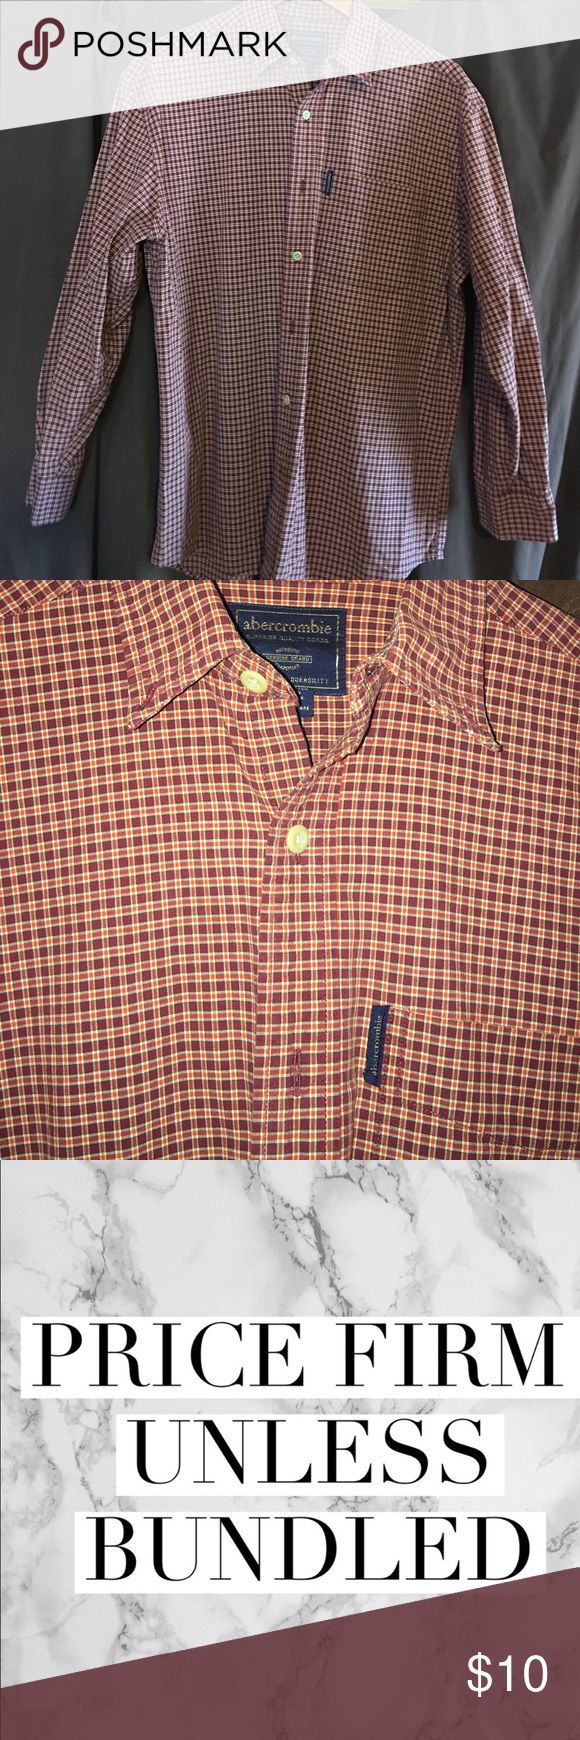 Abercrombie & Fitch shirt Gently worn Abercrombie & Fitch shirt size XL Abercrombie & Fitch Shirts Casual Button Down Shirts